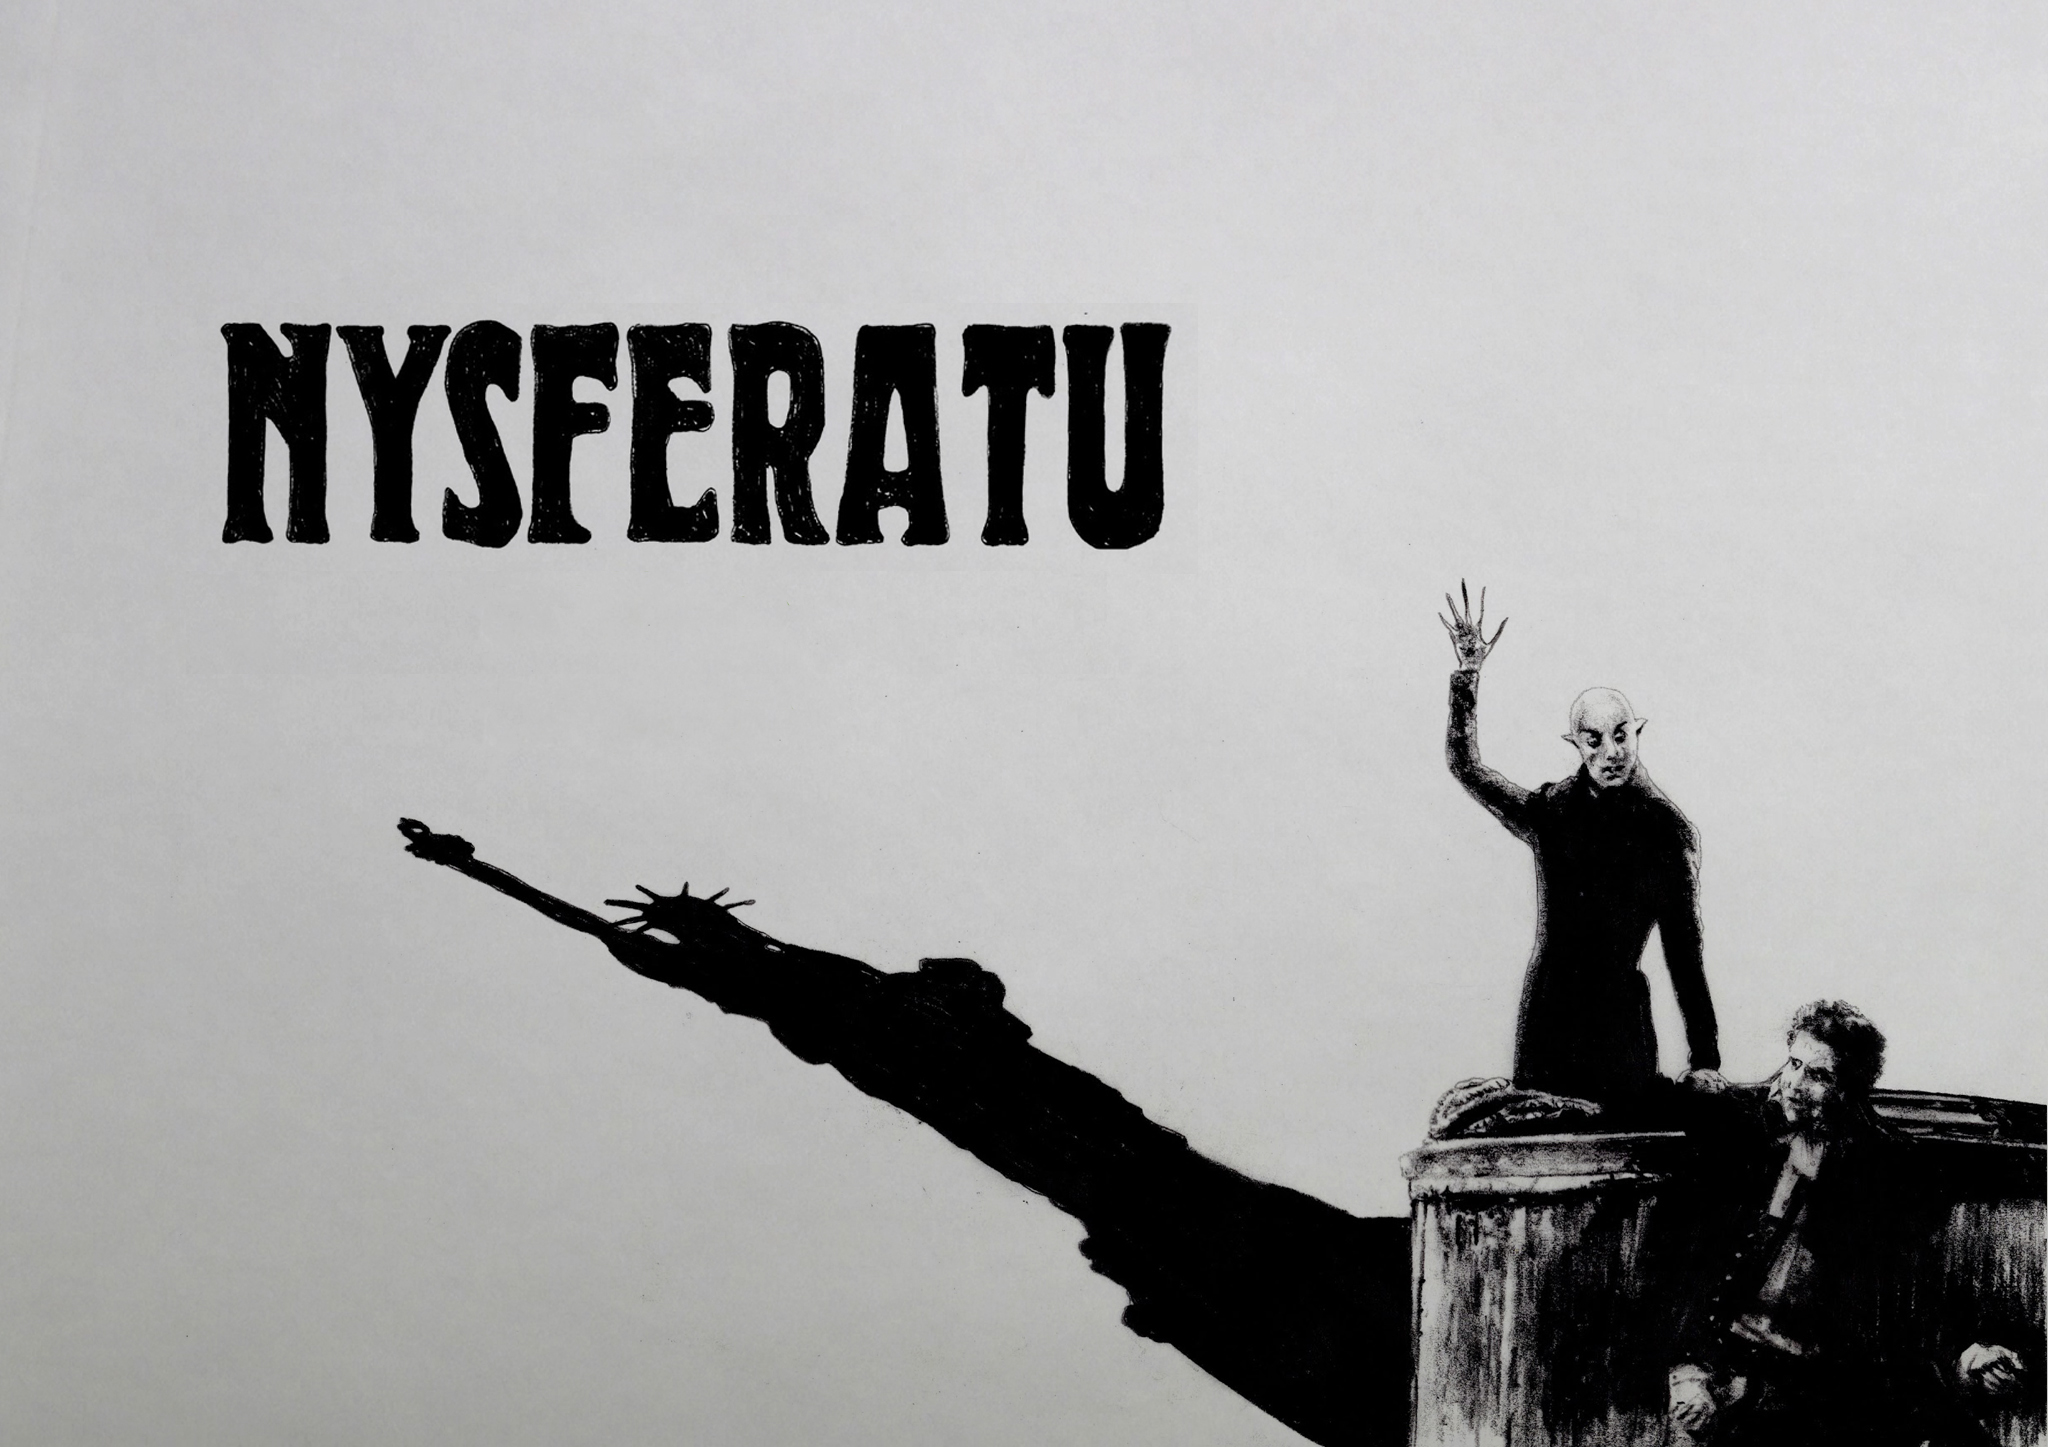 9. More Art_NYsferatu_Film Title Card_Andrea Mastrovito.jpg